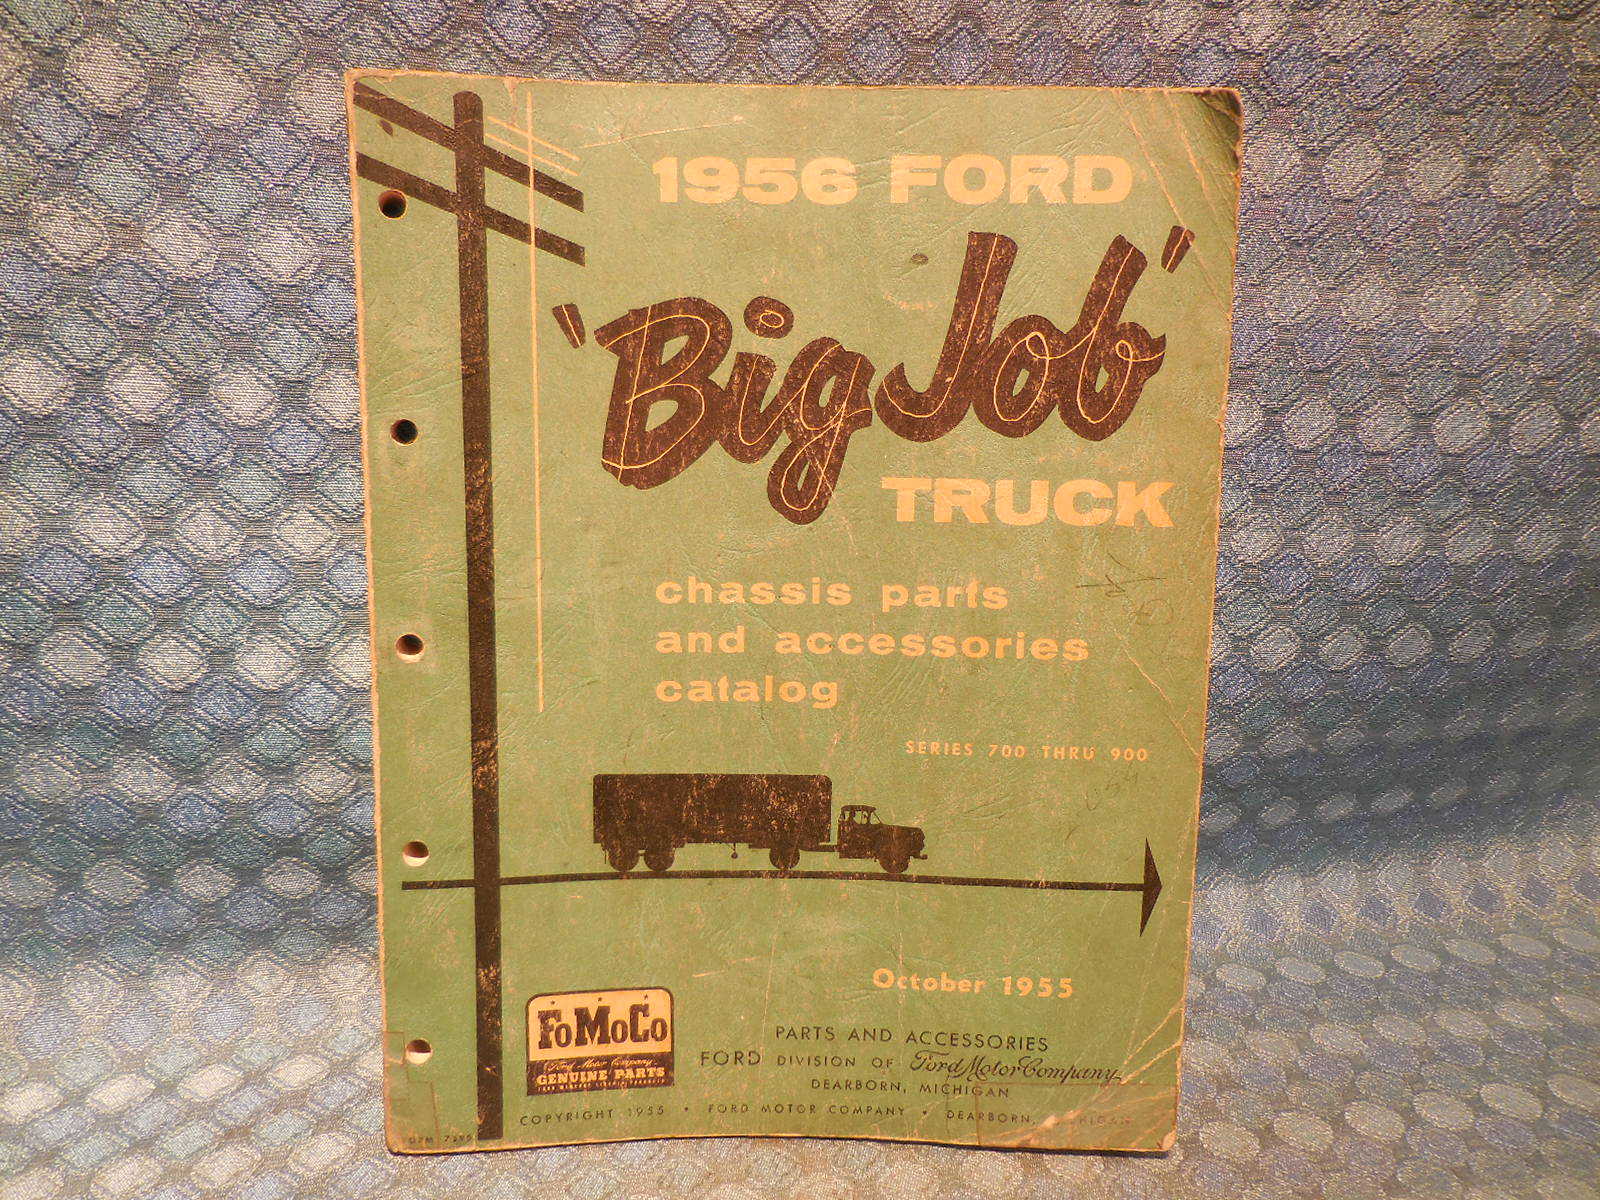 1956 Ford Truck Series 700-900 Original Chassis Parts & Accessories Catalog  - NOS Texas Parts, LLC - Antique Auto Parts